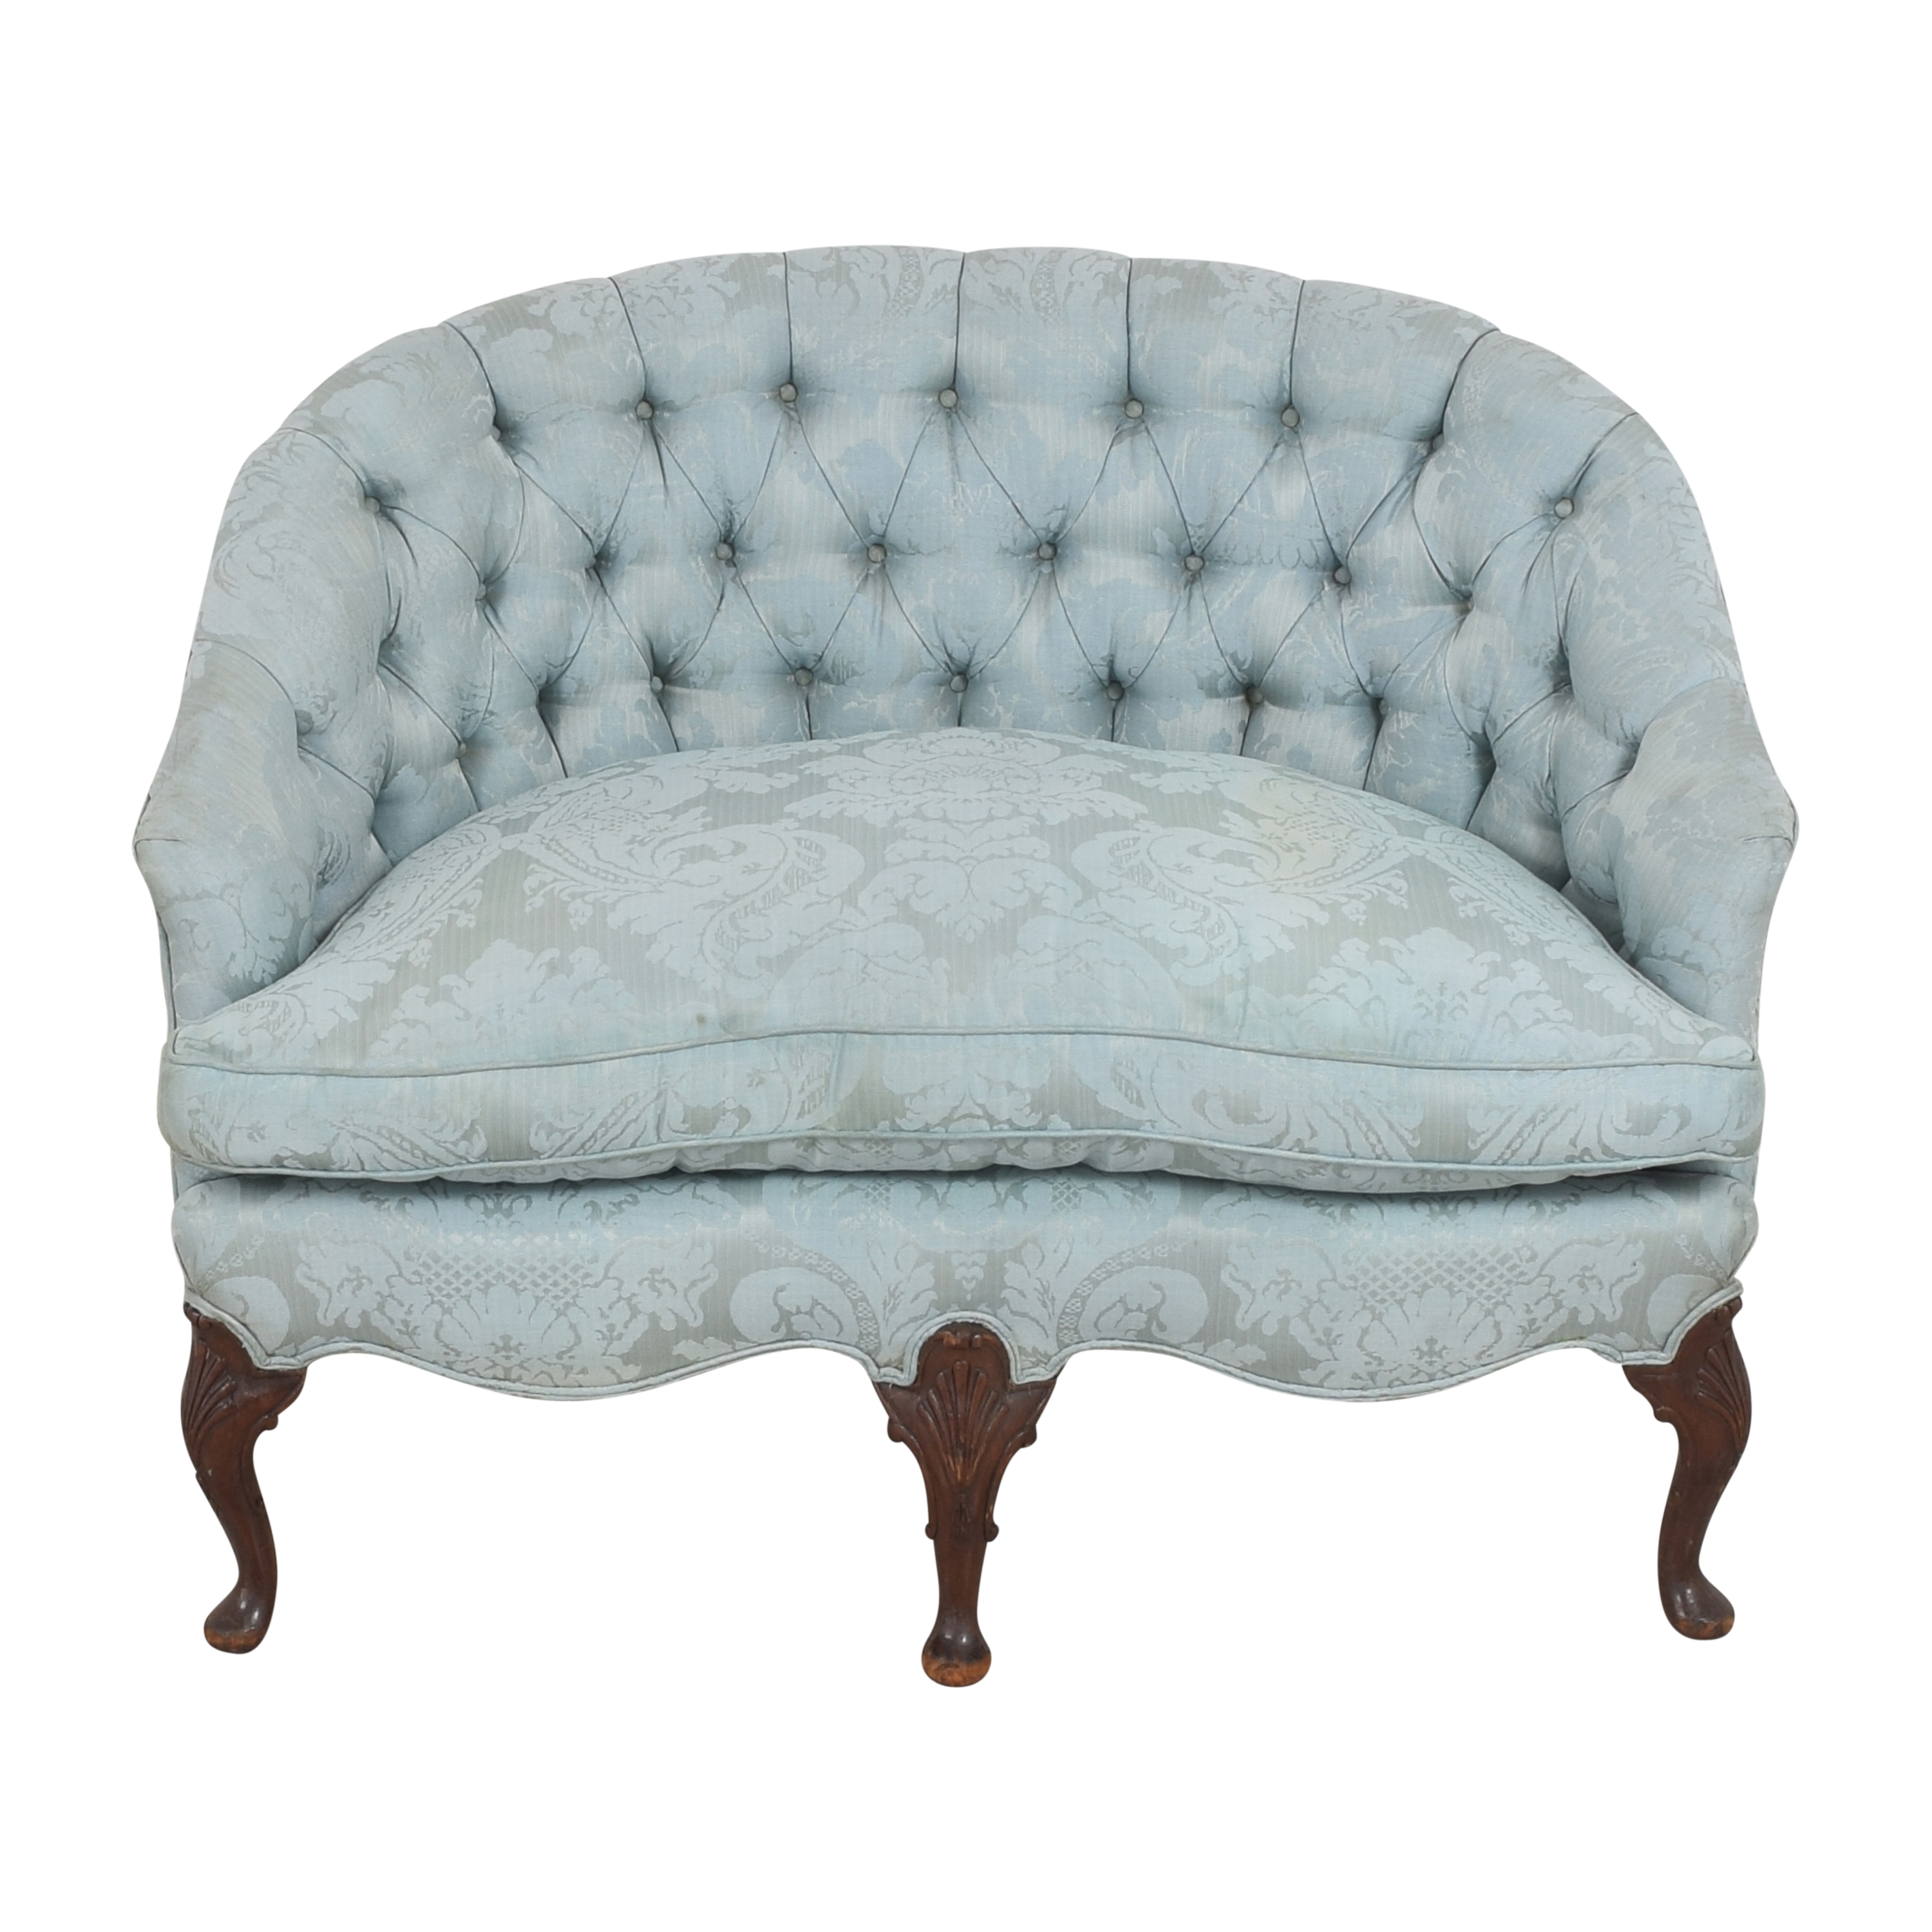 Damask Tufted Settee for sale